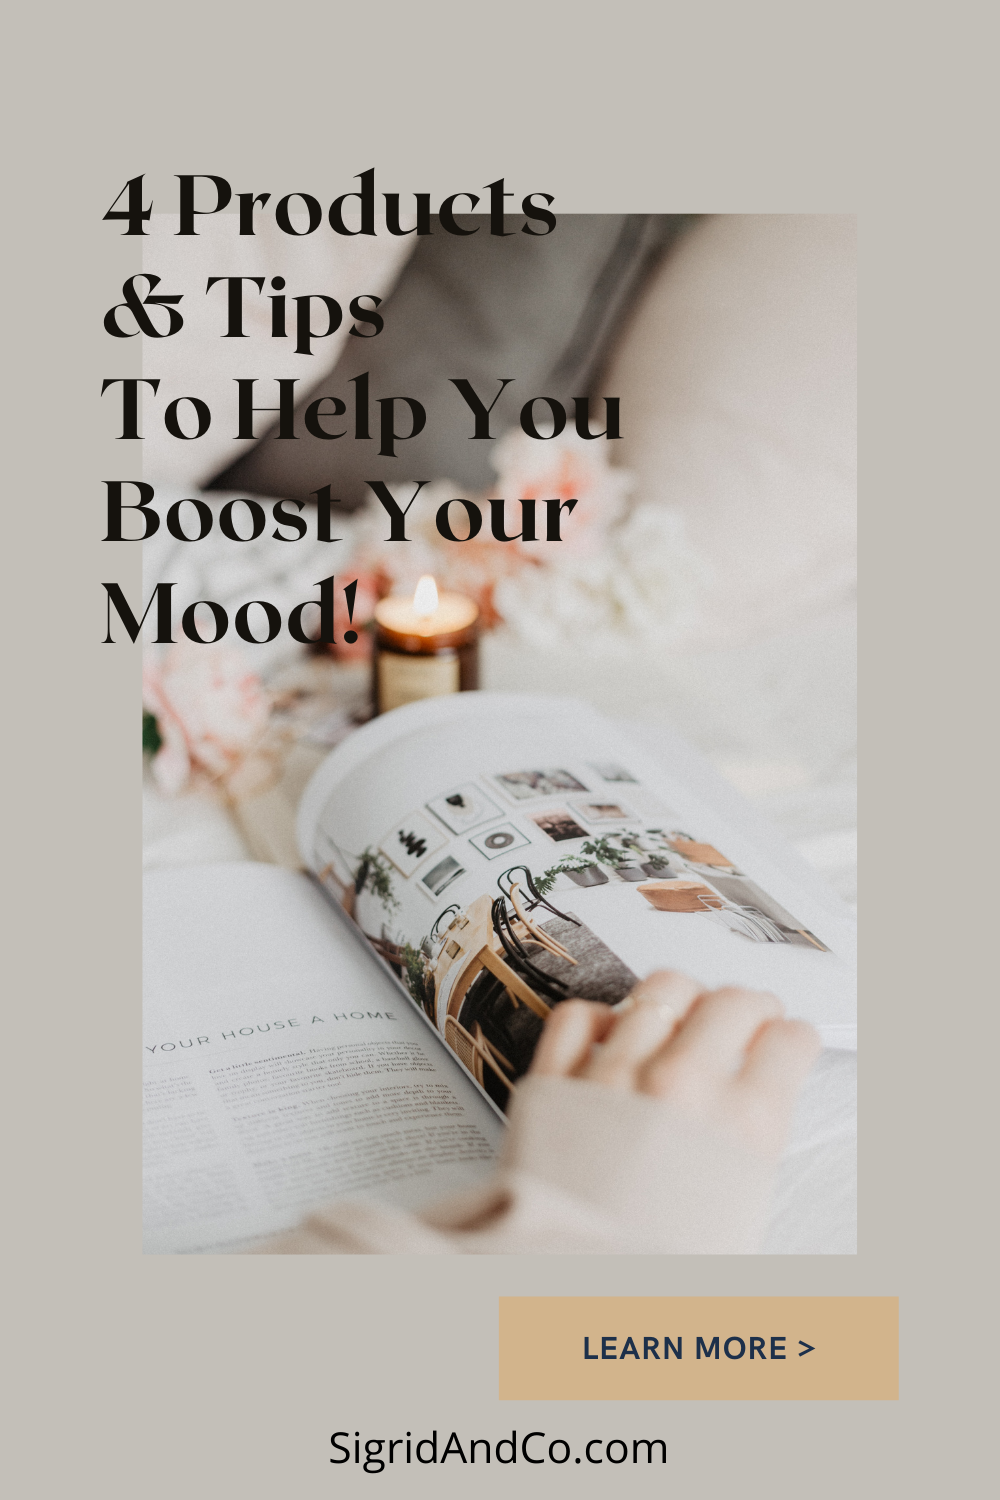 Wellness at Home: 4 Products and Tips to Boost Your Mood